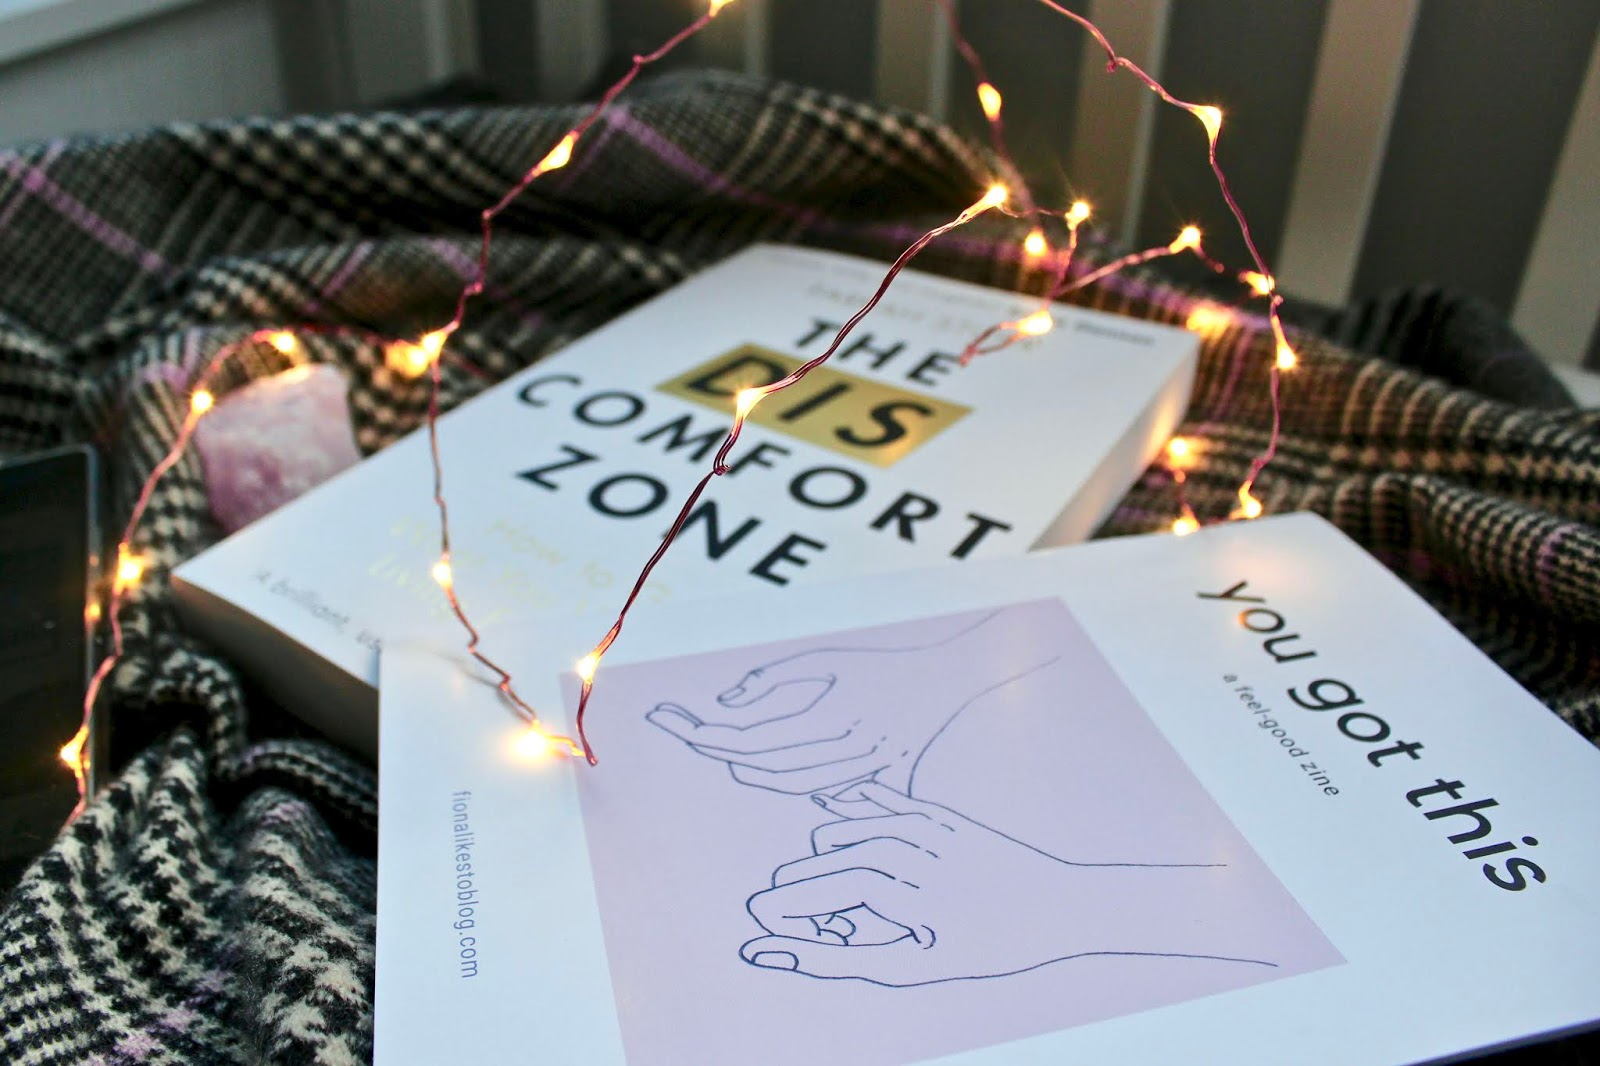 The Discomfort Zone book, a mindfulness app and some pink fairy lights